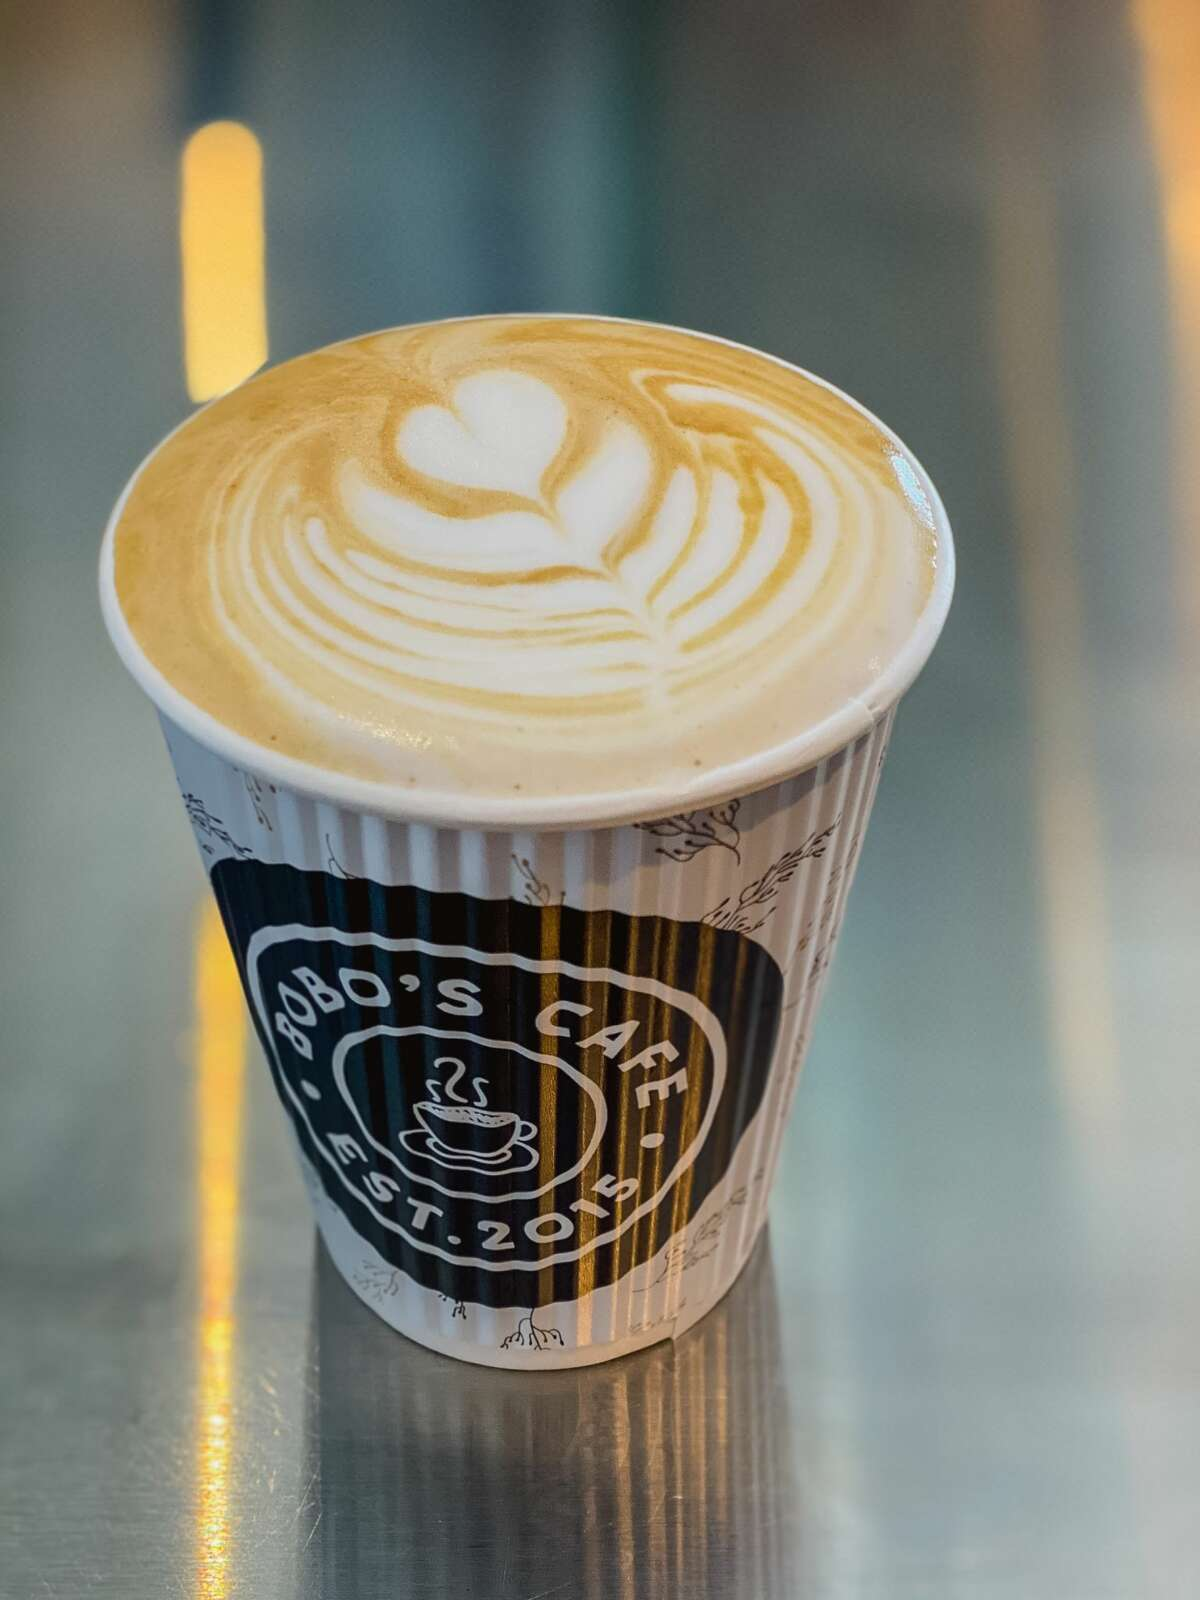 """Coffee from Bobo's Cafe in Ridgefield. """"We were already very familiar with Ridgefield and the town,"""" said co-owner Glen Bernardi, who launched the business in 2015 alongside his brother, father and a family friend. His grandfather, Bo Bernardi, who operated delis in and around Yonkers, N.Y., decades ago, is the namesake for the café. """"It was our grandfather's nickname,"""" Glen said, noting that family and building relationships is at the heart of sustaining the business for them."""